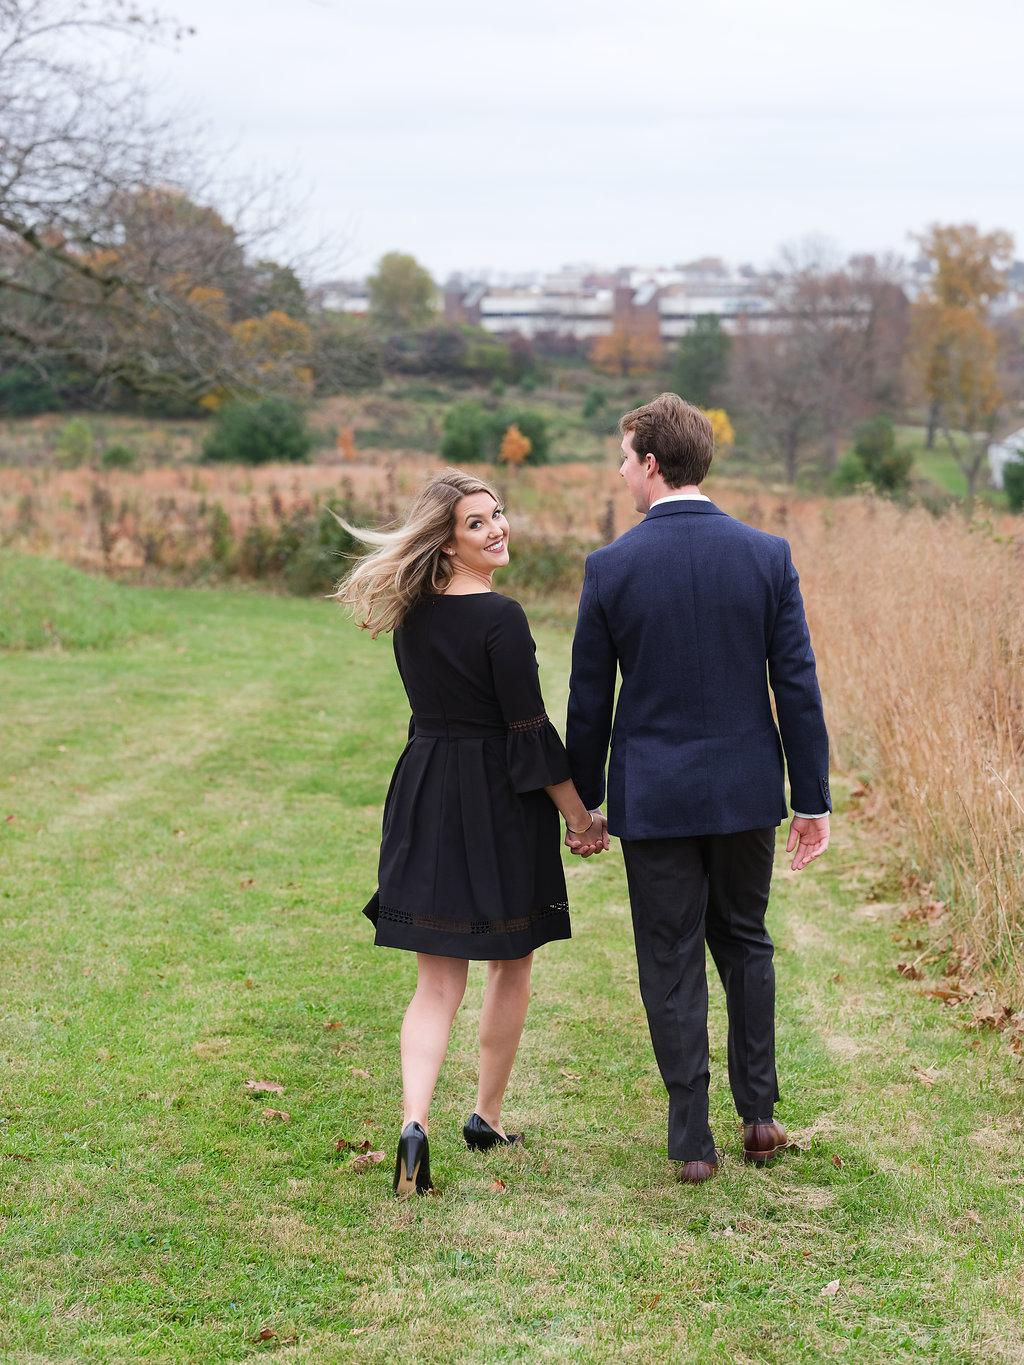 Fall Engagement Session at Valley Forge National Historical Park Alison Conklin Photography Philly In Love Philadelphia Weddings Venues Vendors